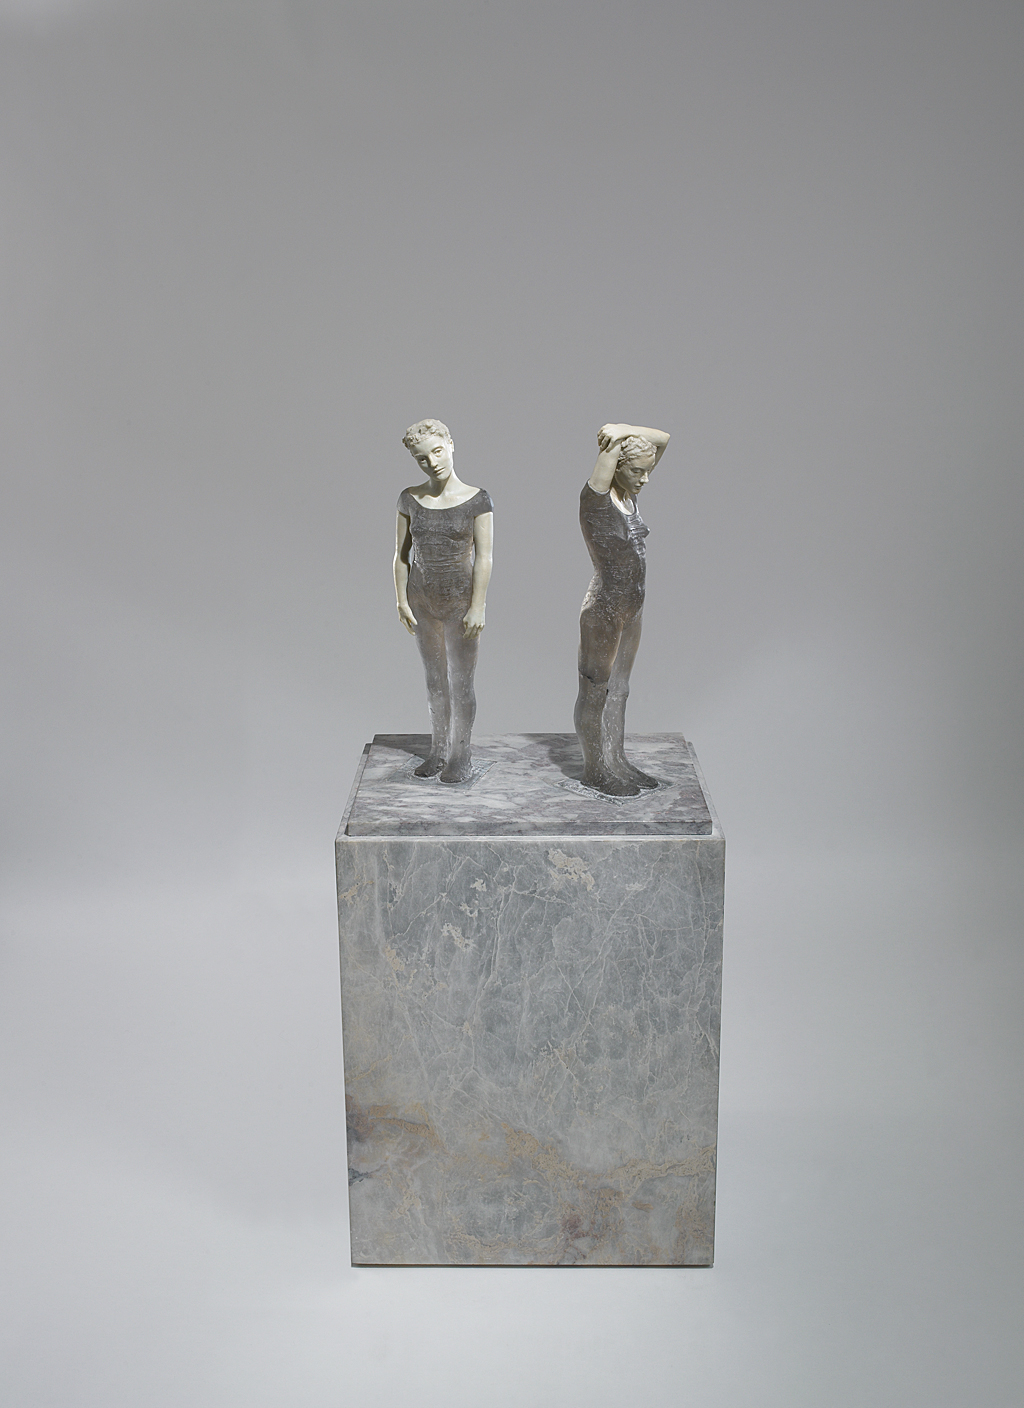 Grey Figures, 2000: Nicholas Africano. Cast leaded glass, hand-painted marble base. Photo: David Behl, 2012